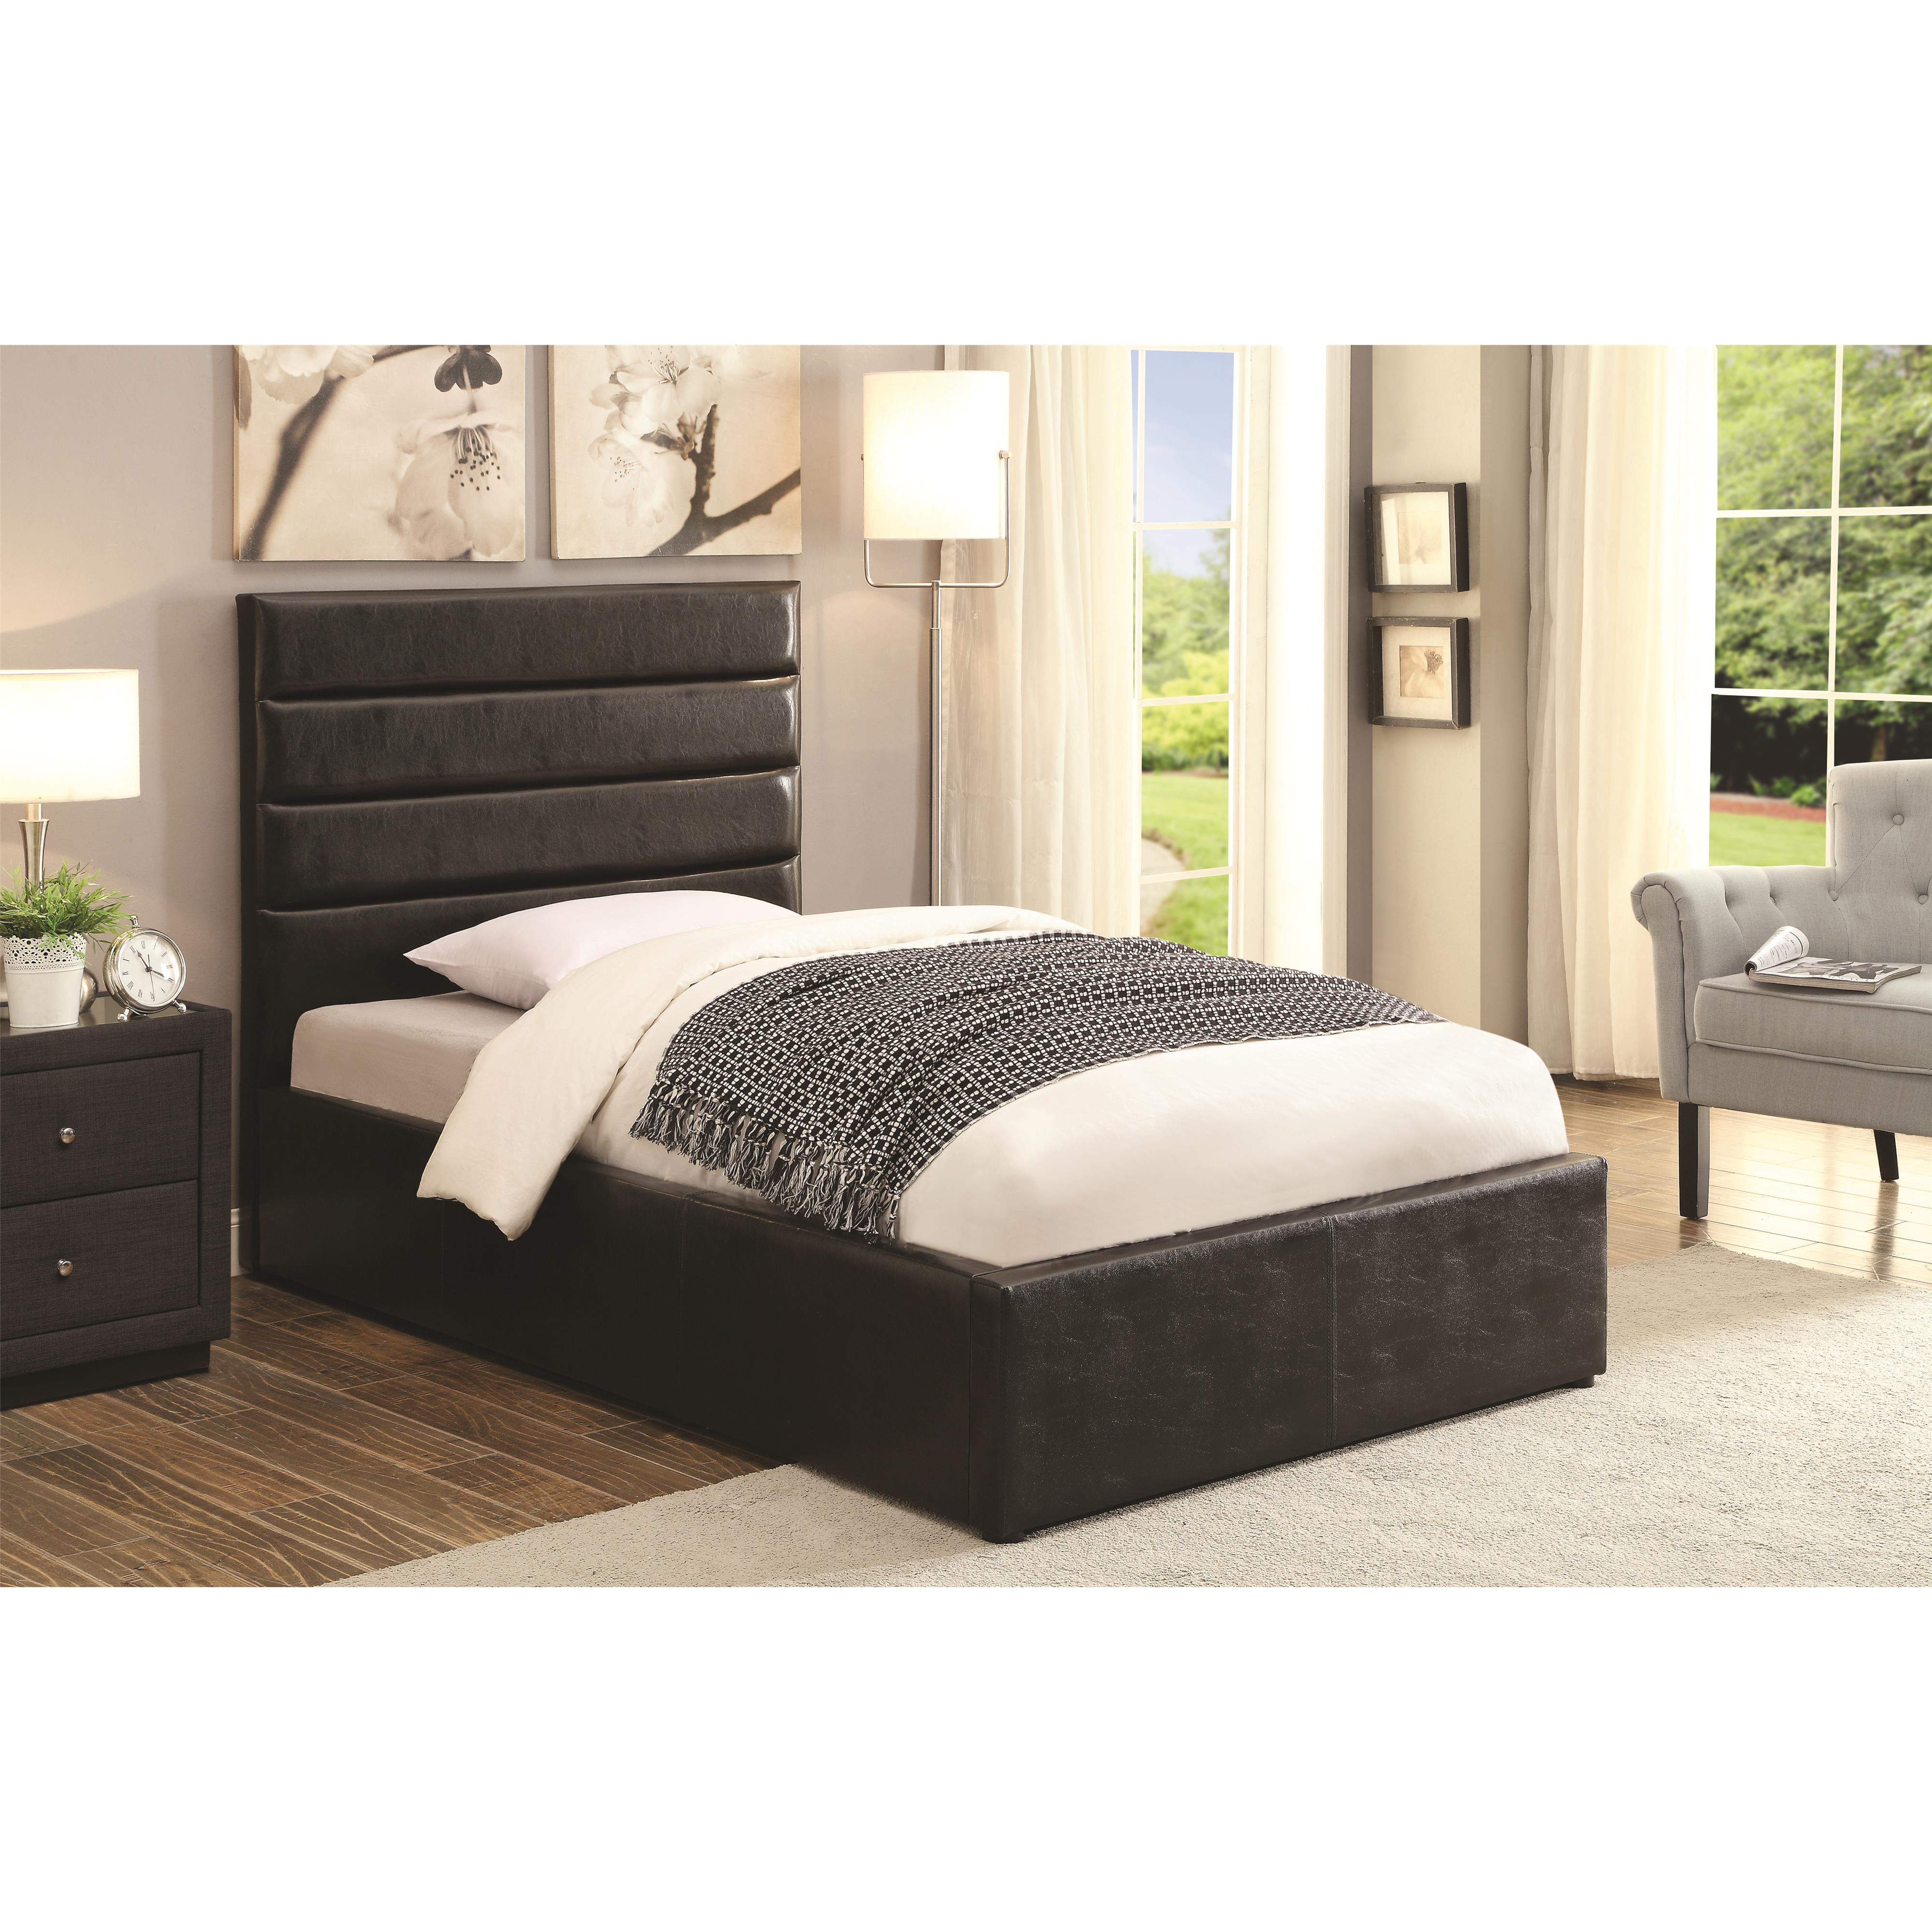 riverbend twin black leatherette upholstered bed with lift top storage quality furniture at. Black Bedroom Furniture Sets. Home Design Ideas